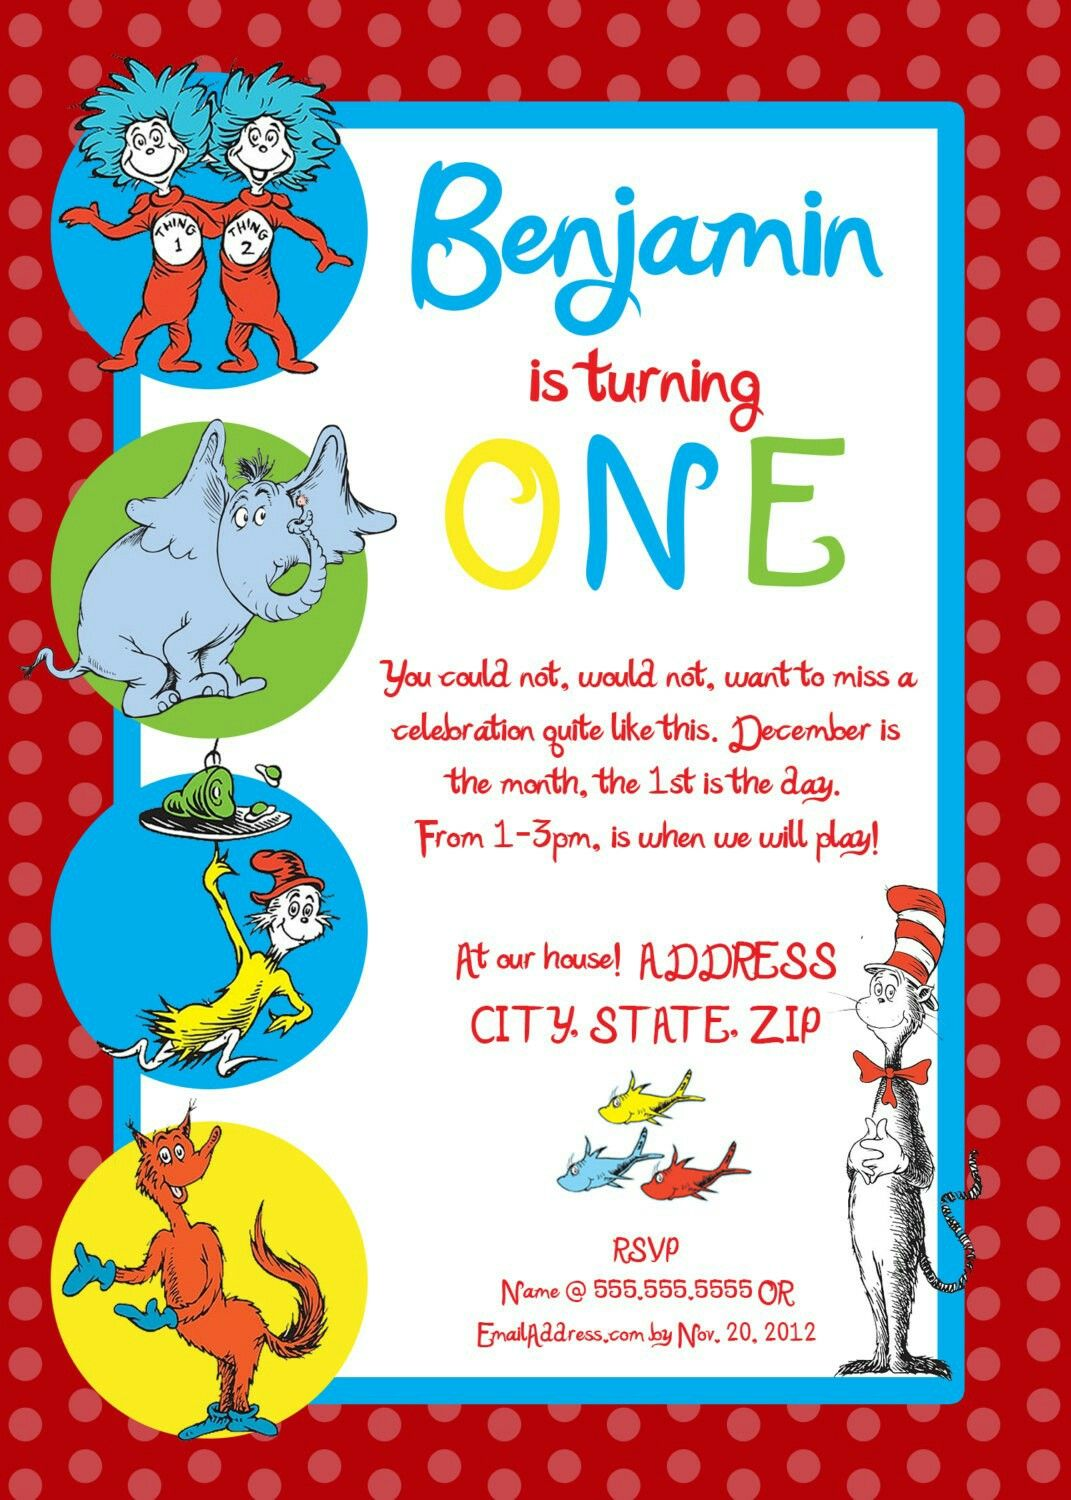 Pin by Stephanie Salazar on Dr suess birthday party | Pinterest ...